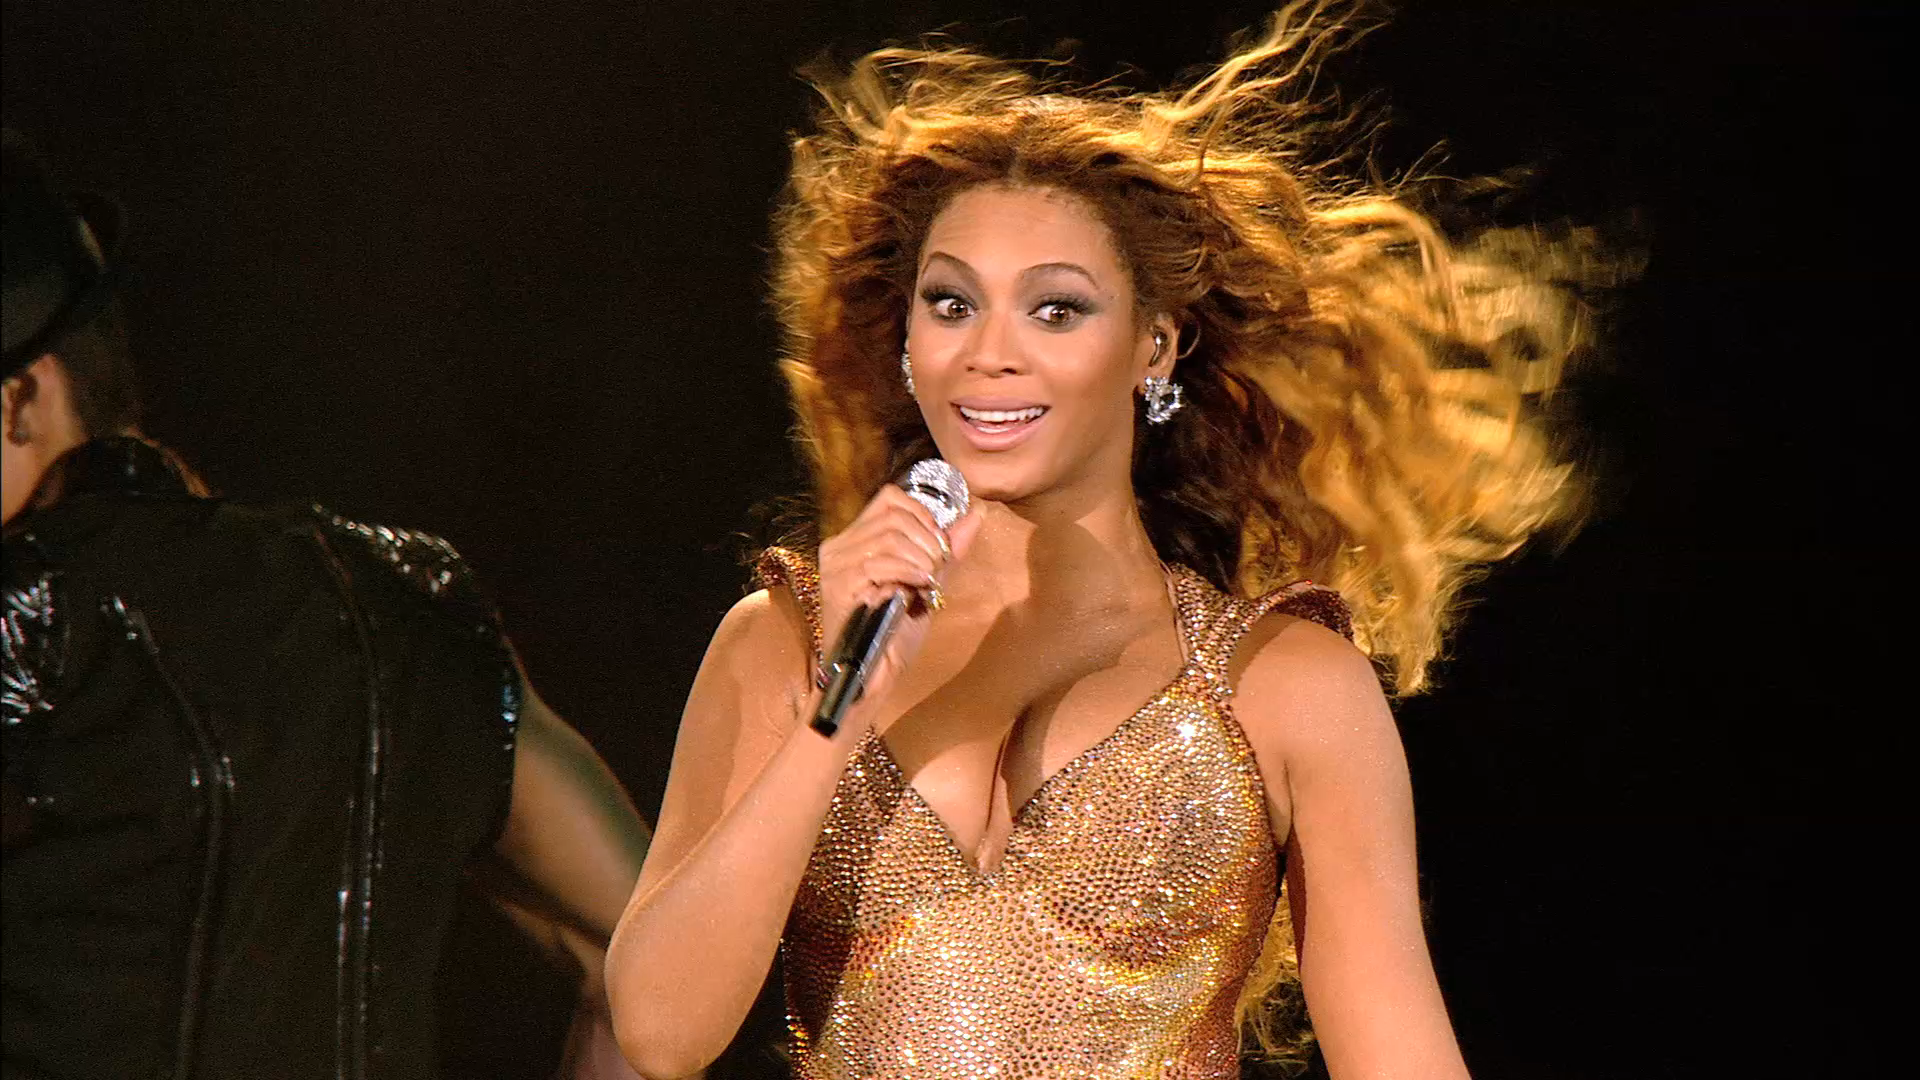 beyonce i am world tour diva - photo #18